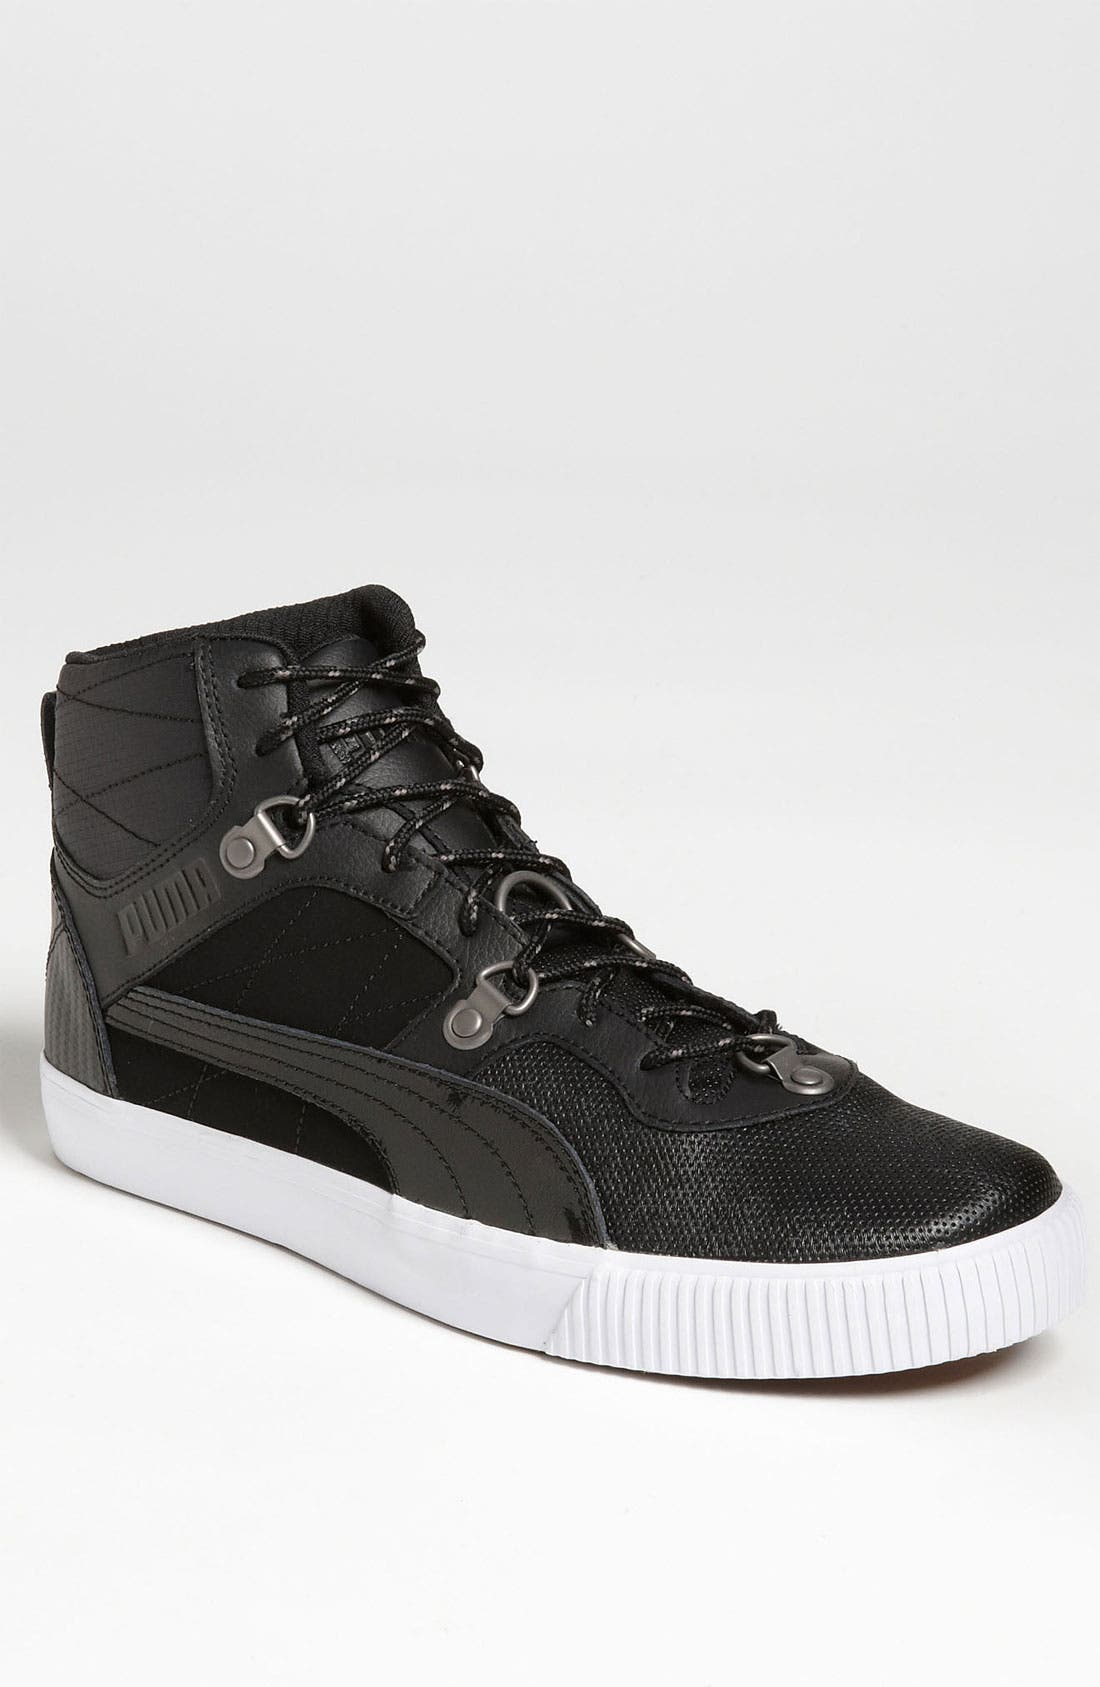 Alternate Image 1 Selected - PUMA 'Tipton L Lux' Sneaker (Men)